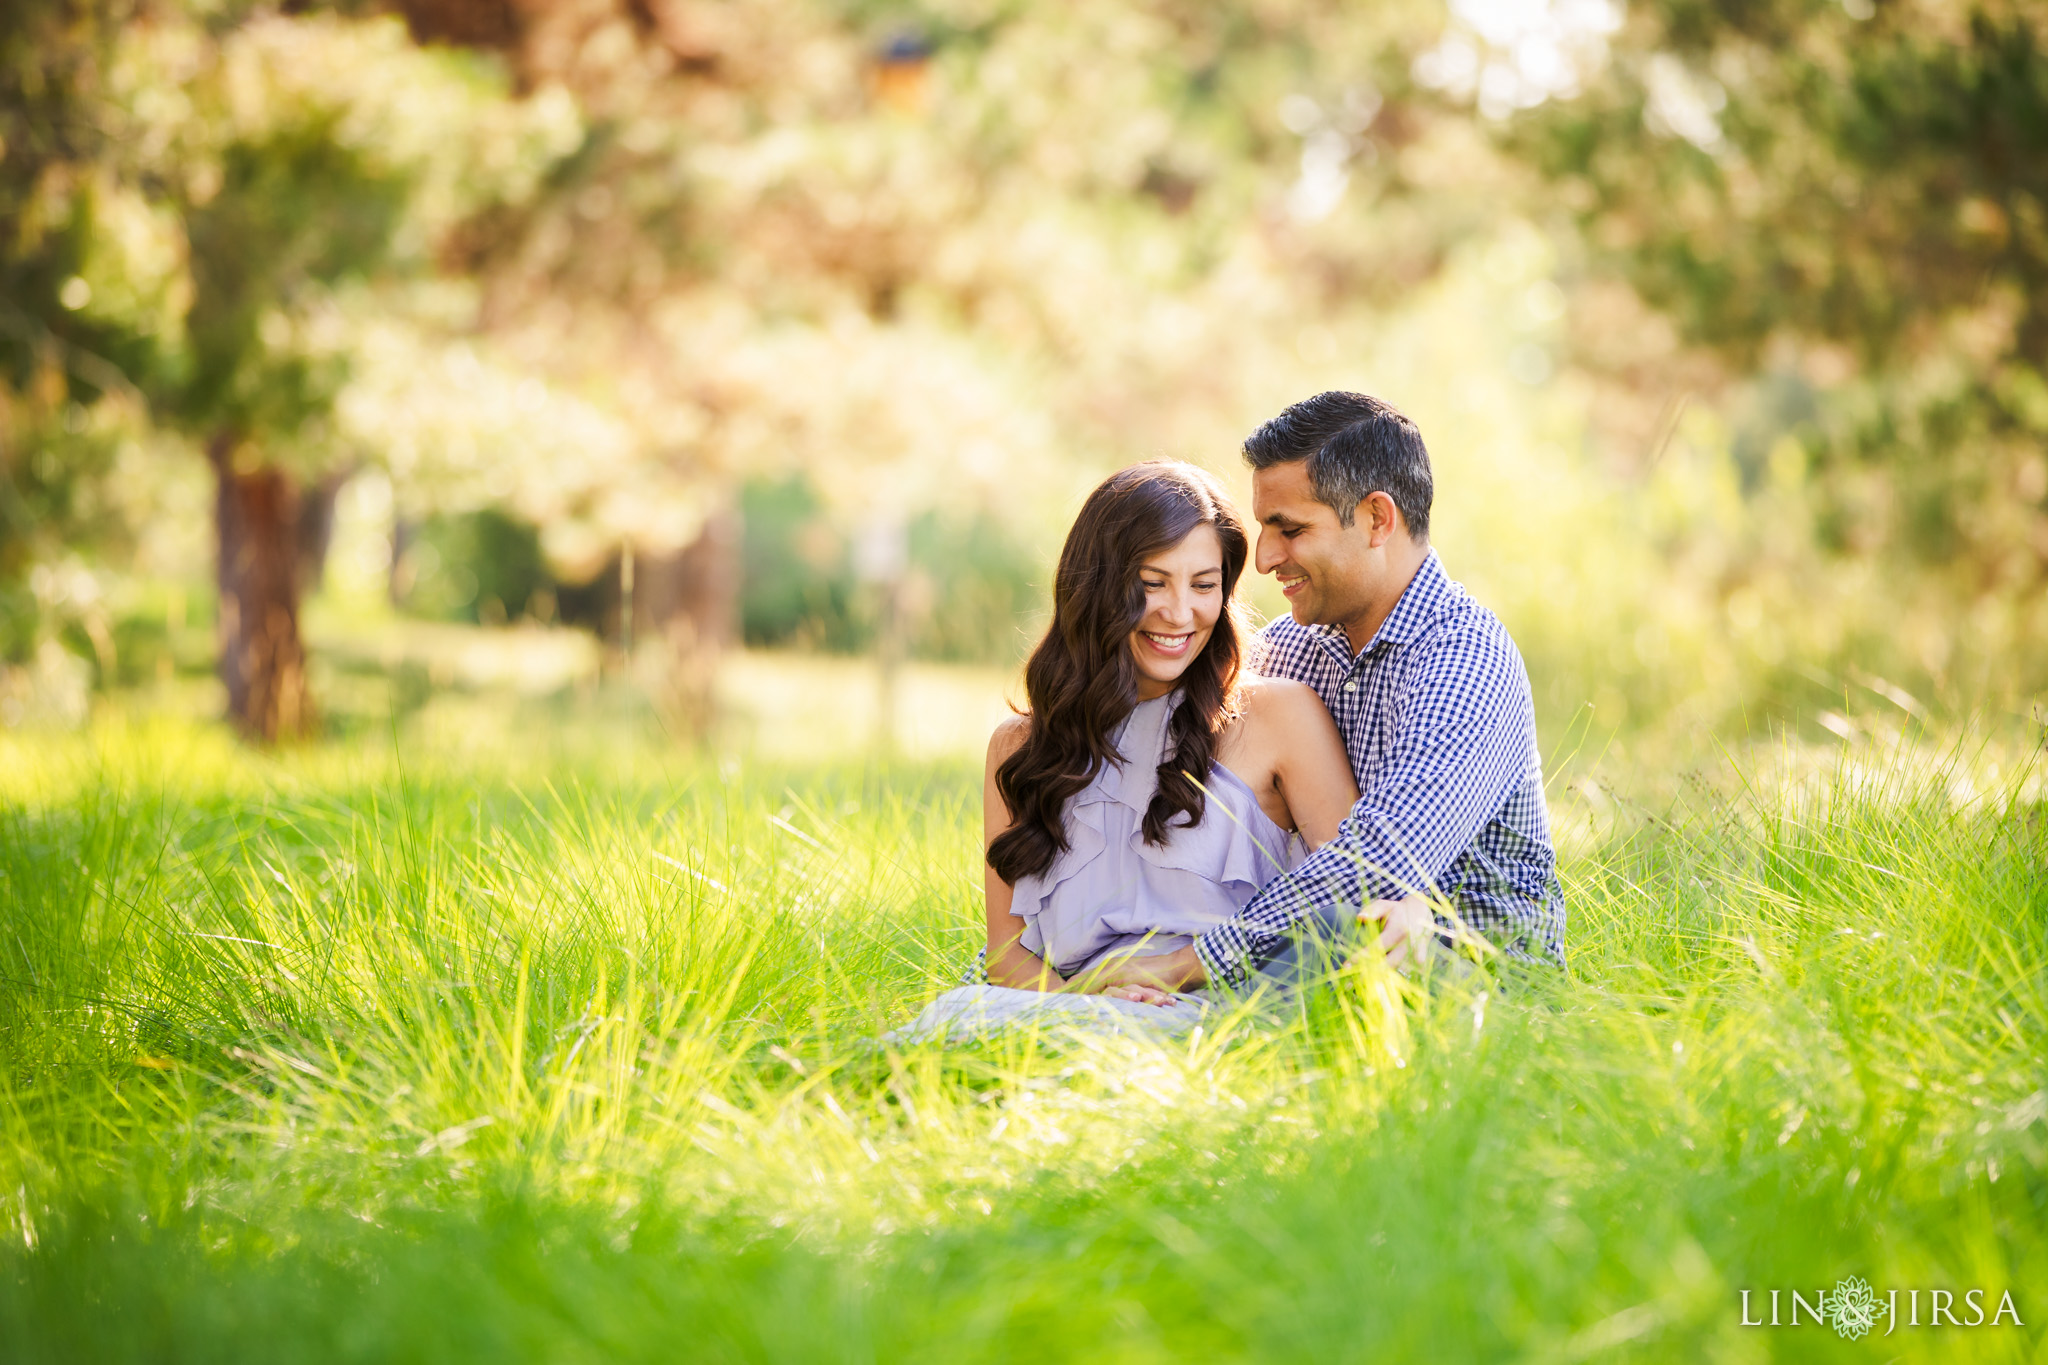 003 jeffrey open space irvine engagement photography